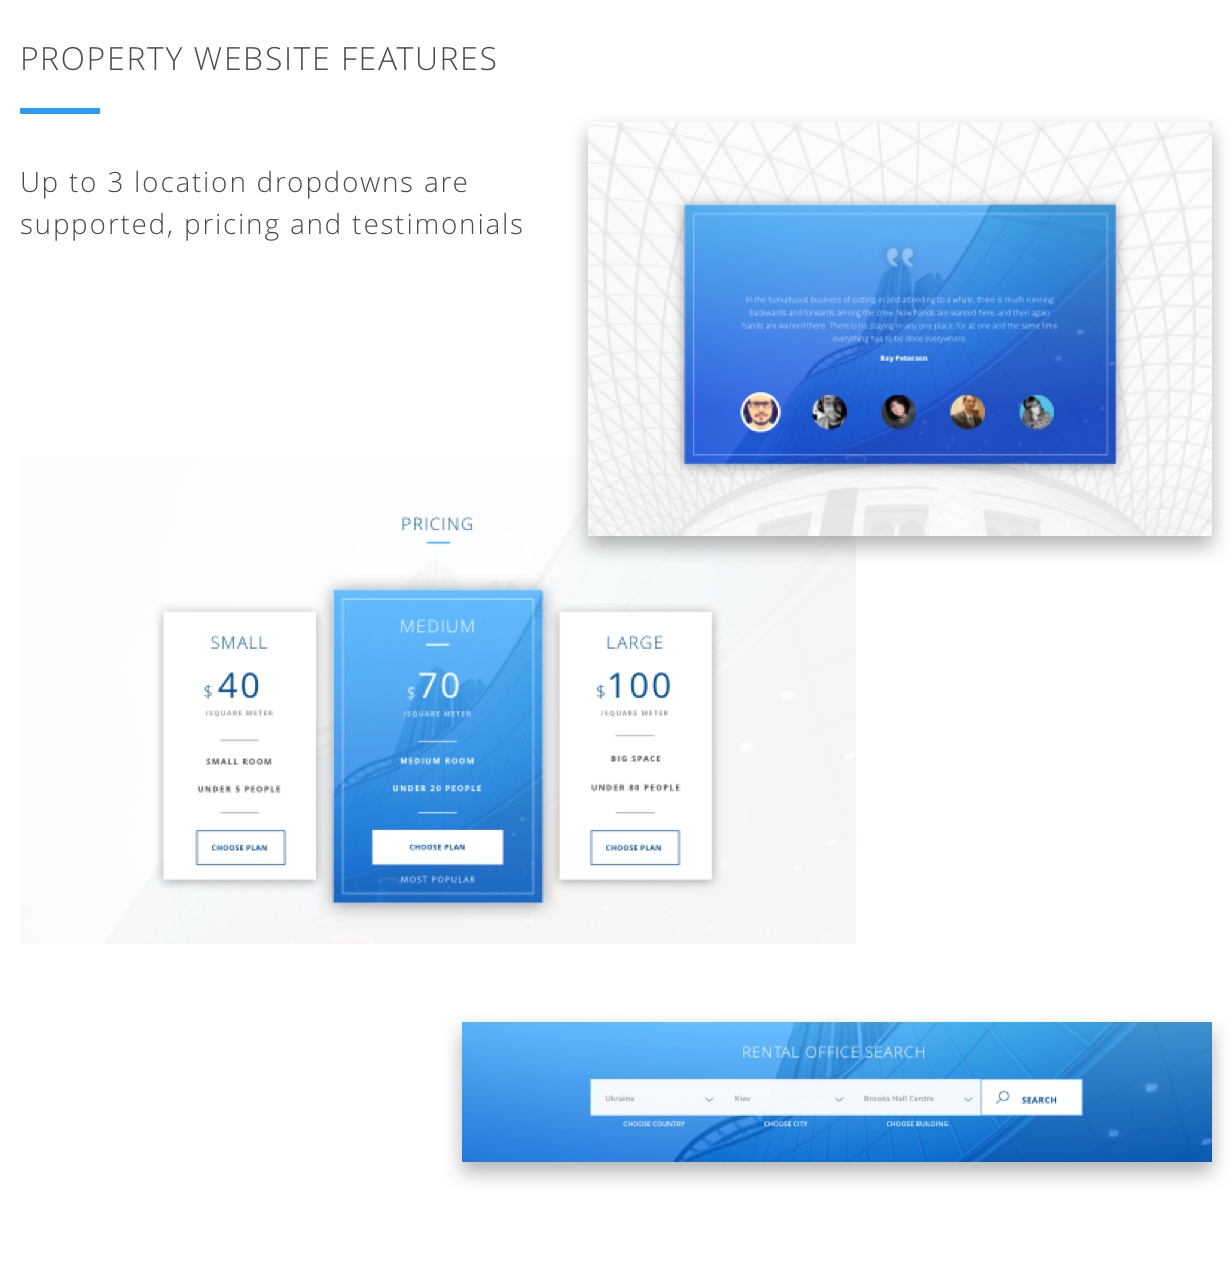 Property website features. Up to 3 location dropdowns are supported, pricing and testimonials.